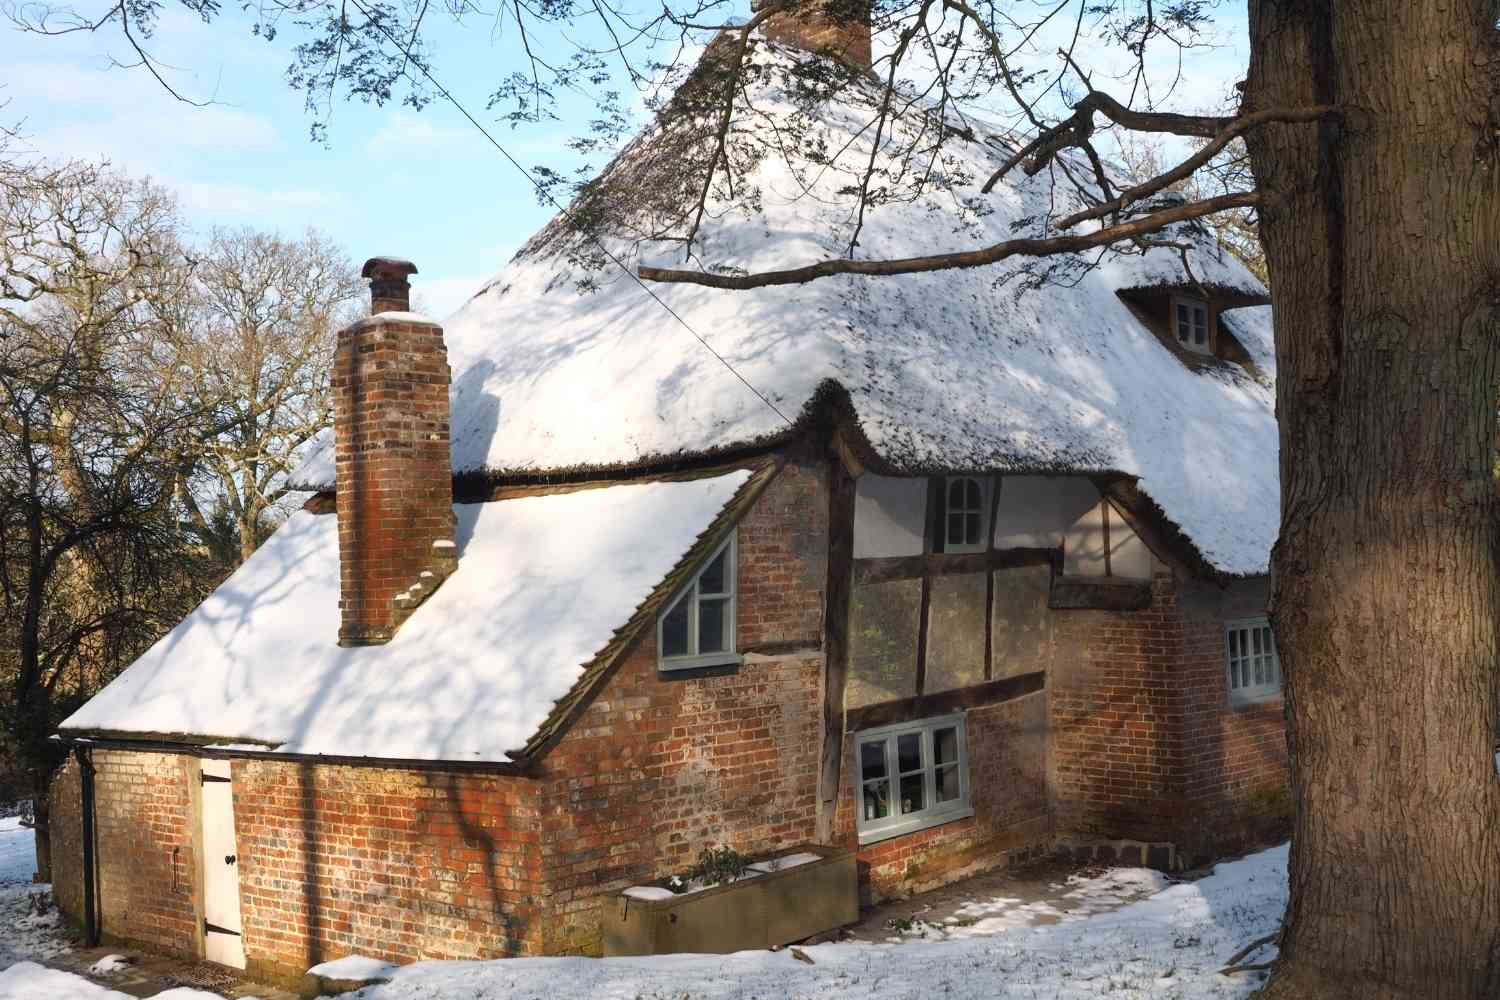 The Forest House with a snowy covering